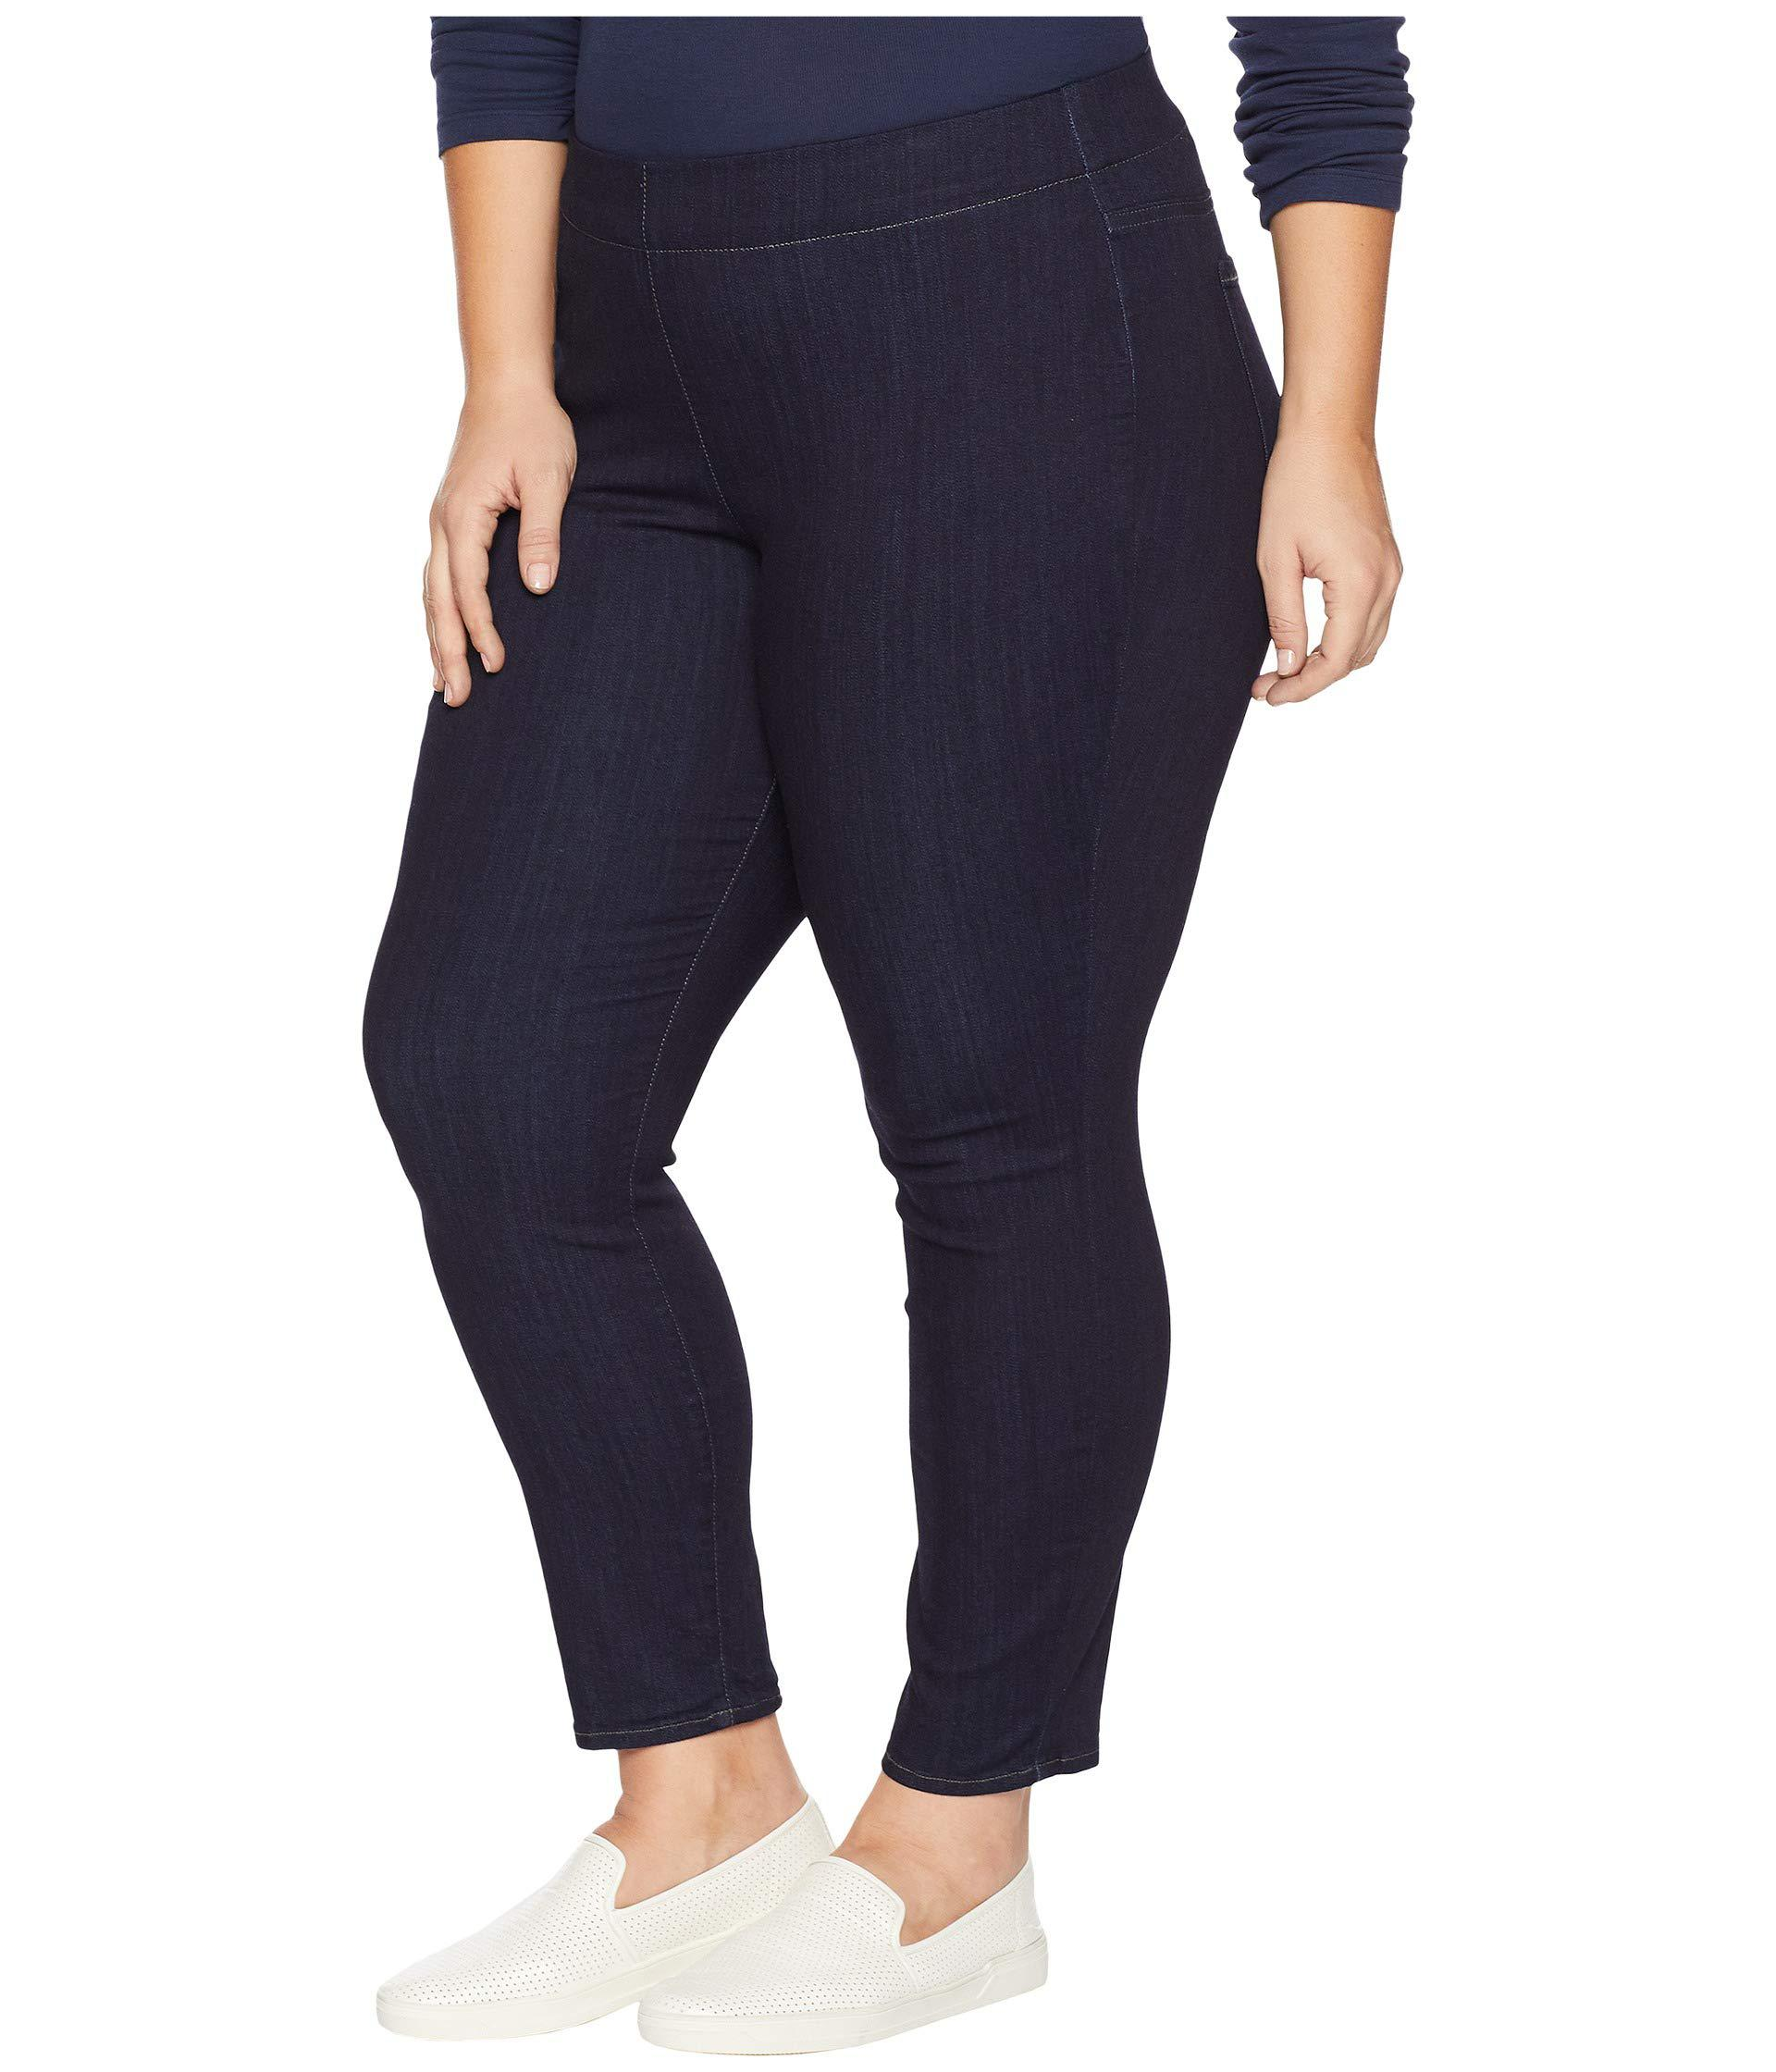 74796fed934 Lyst - Nydj Plus Size Pull-on Skinny Ankle In Mabel (mabel) Women s Jeans  in Blue